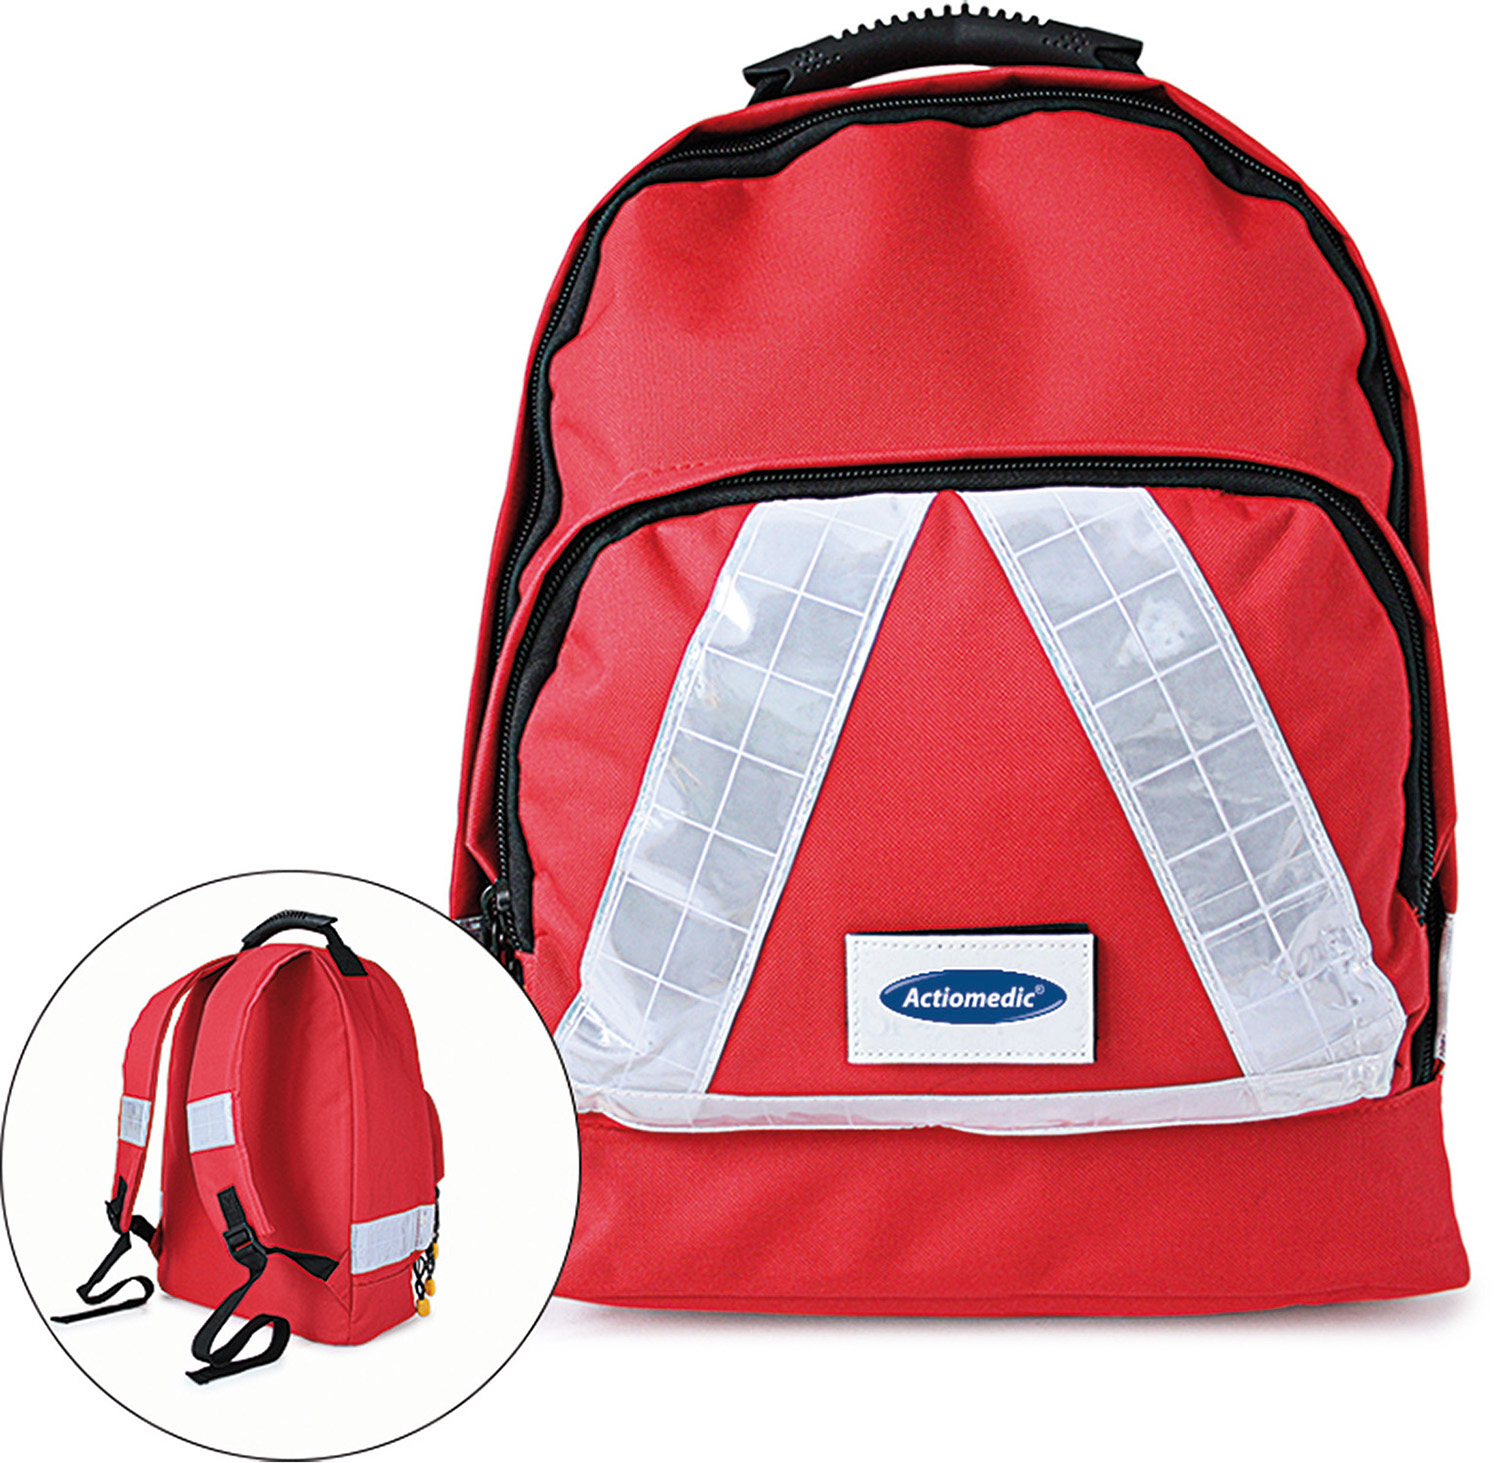 Notfall-Rucksack SMALL DIN 13 157, rot}